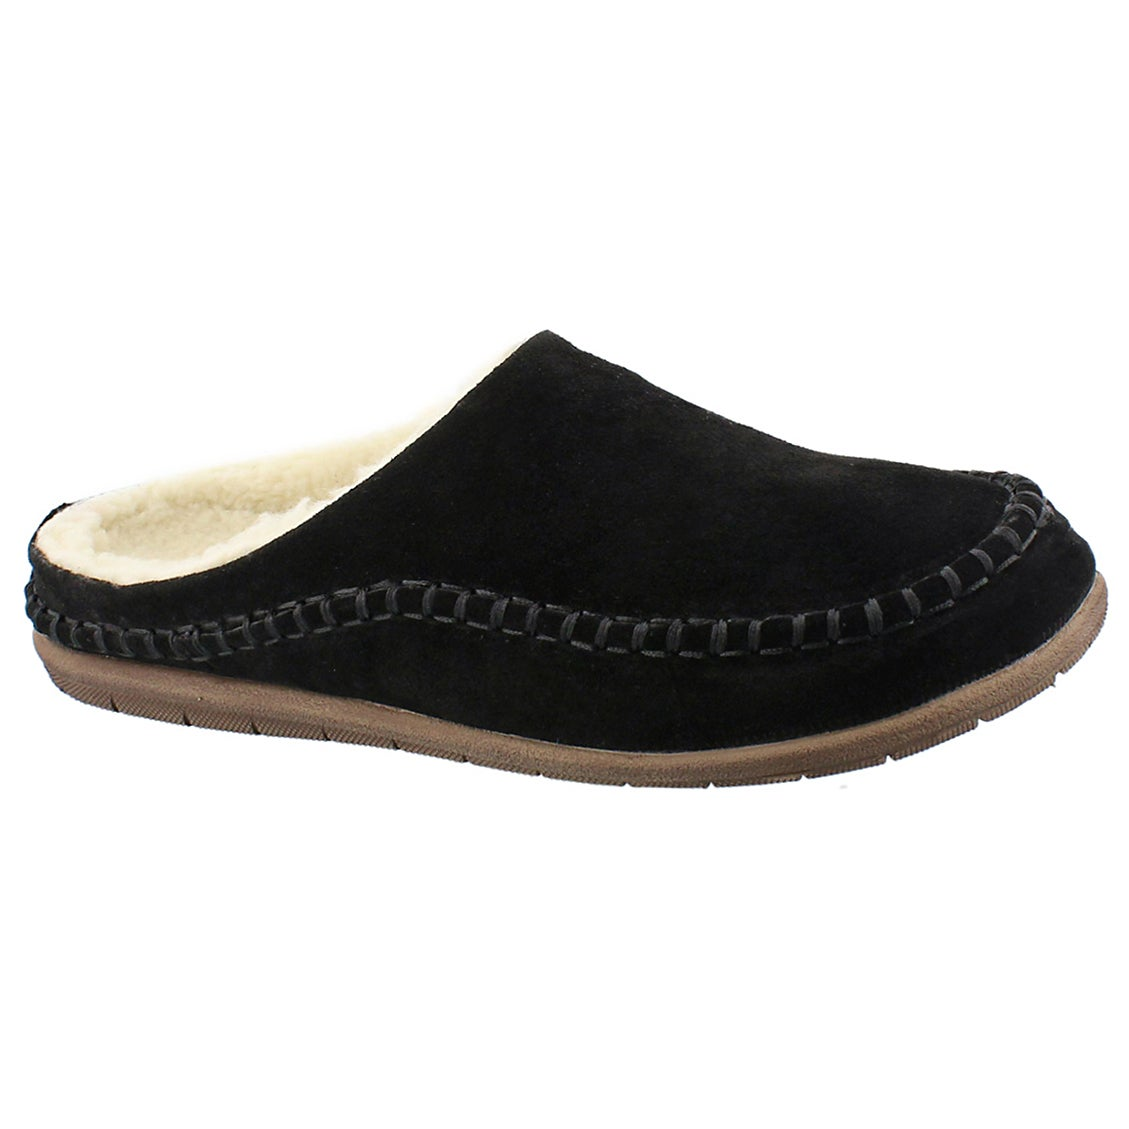 Mns Logan black open back slipper